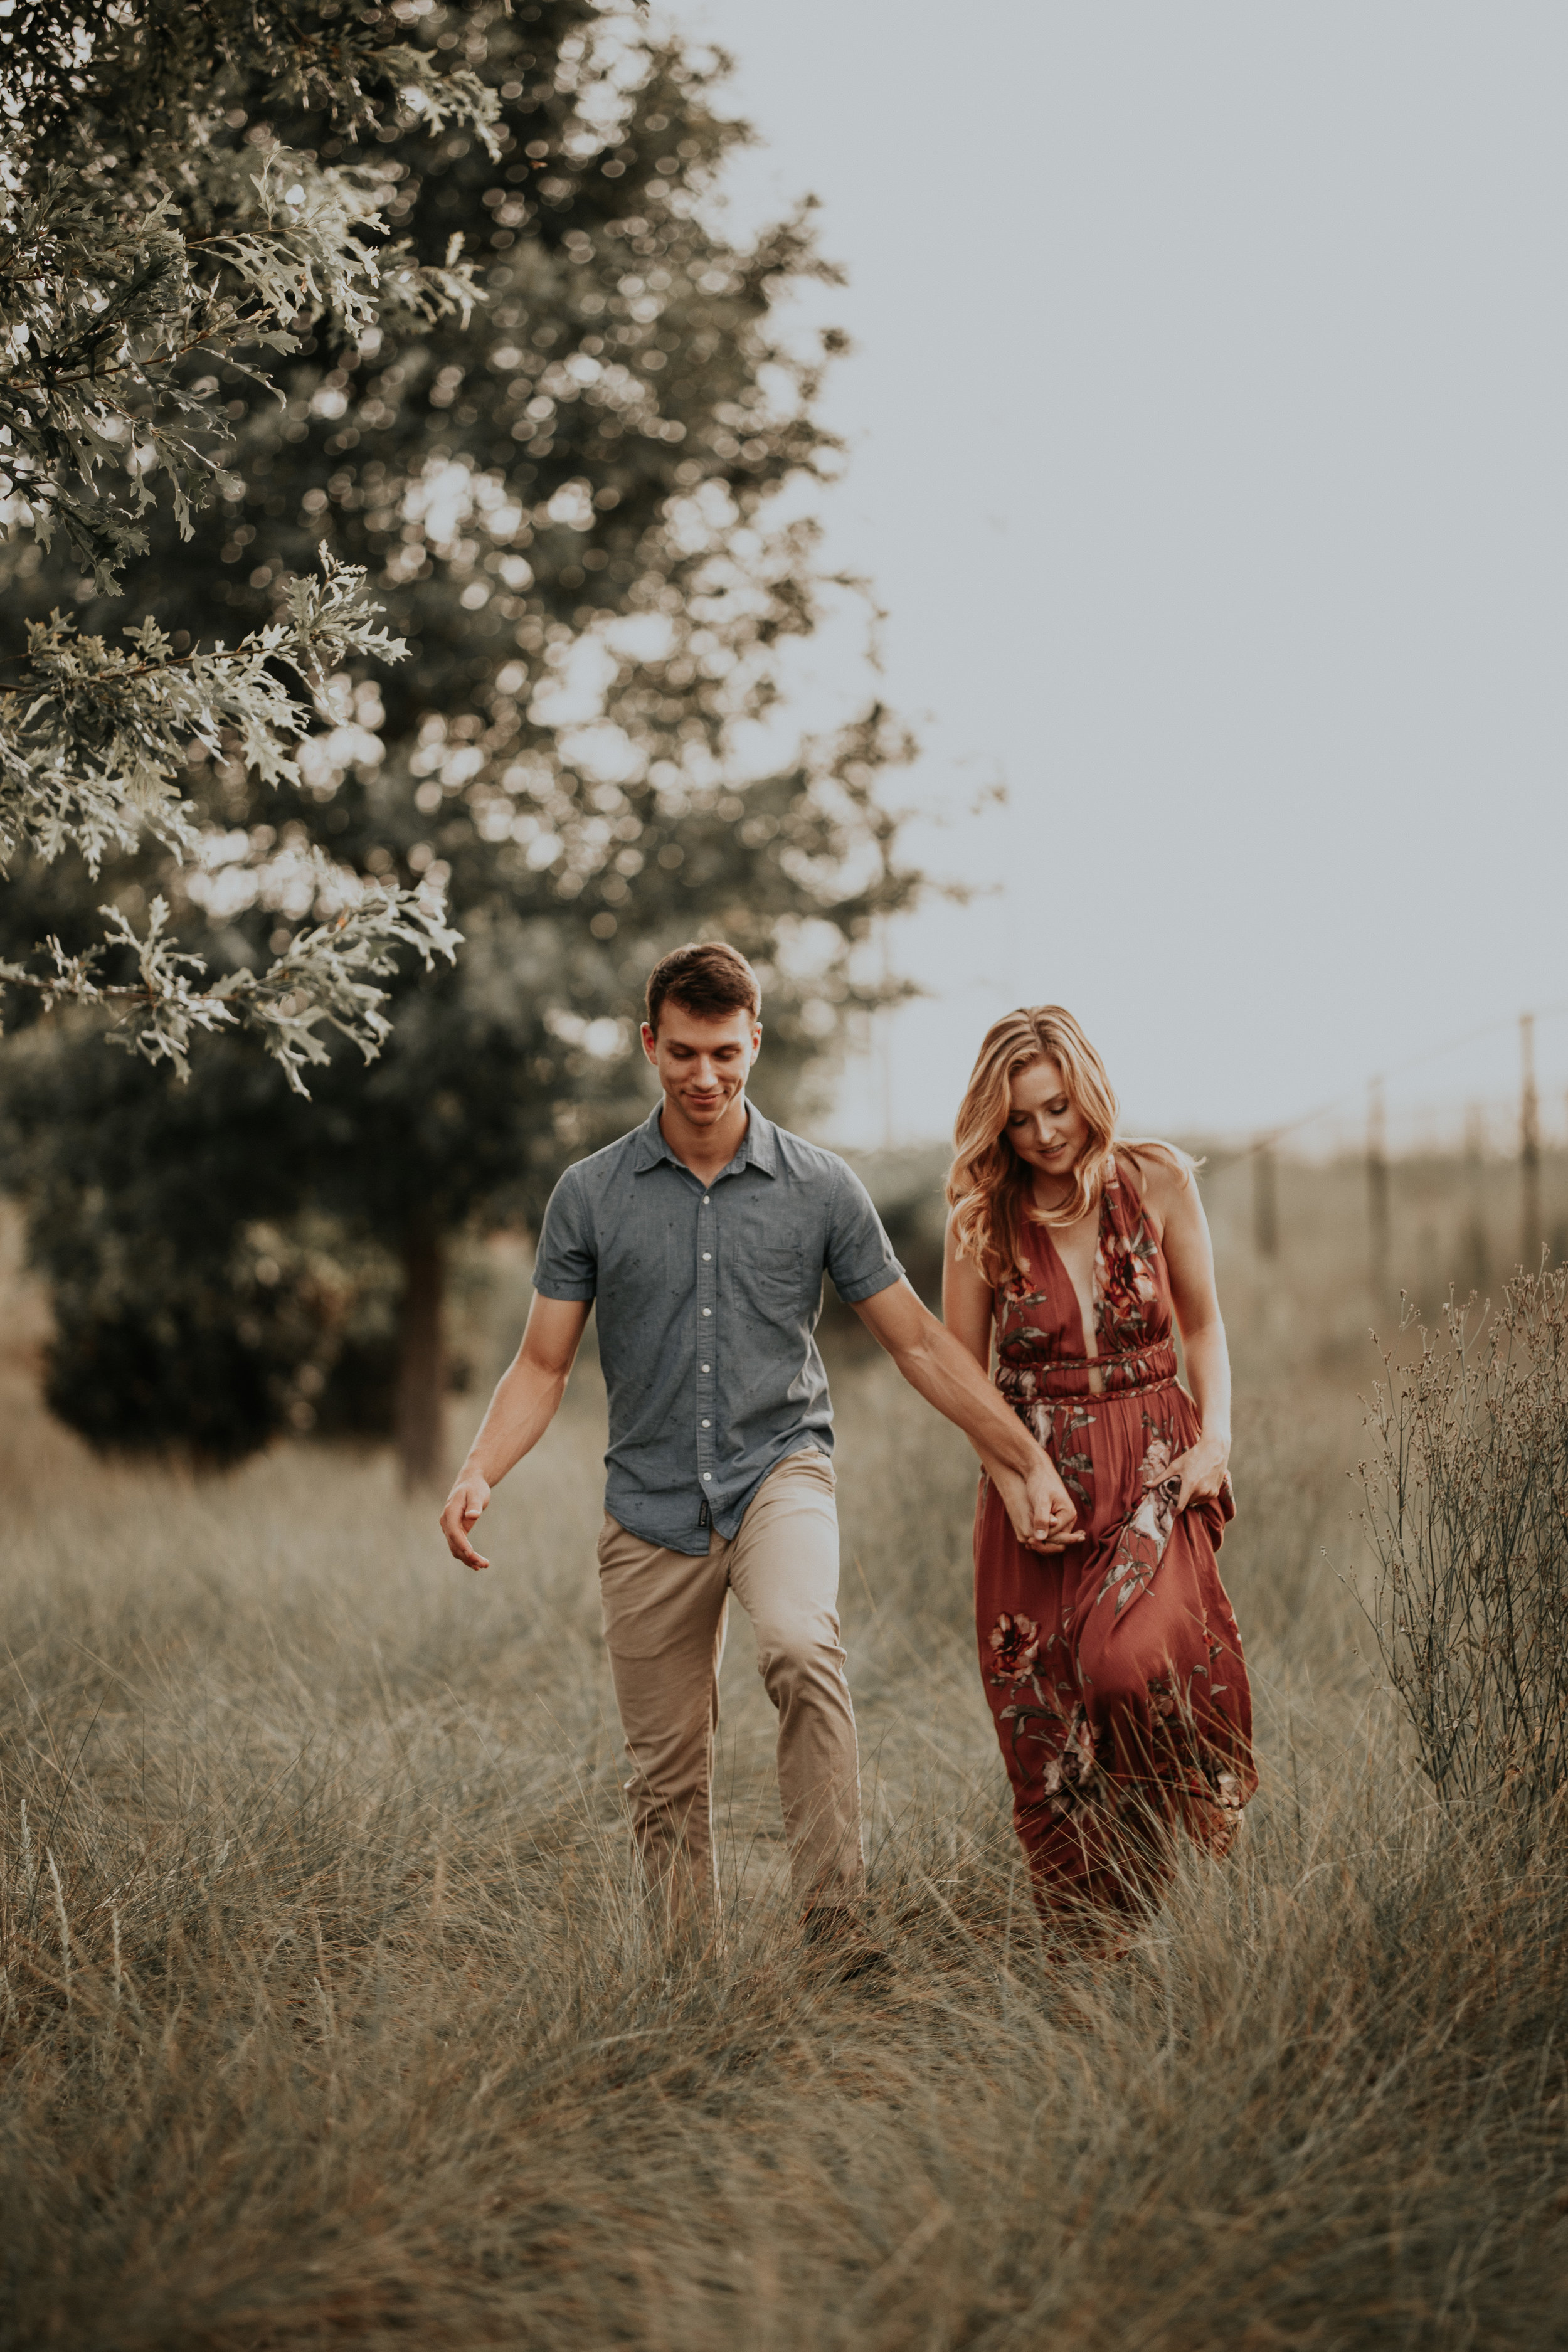 katie and brandon _ engagement session _ 08-5-1700146.jpg